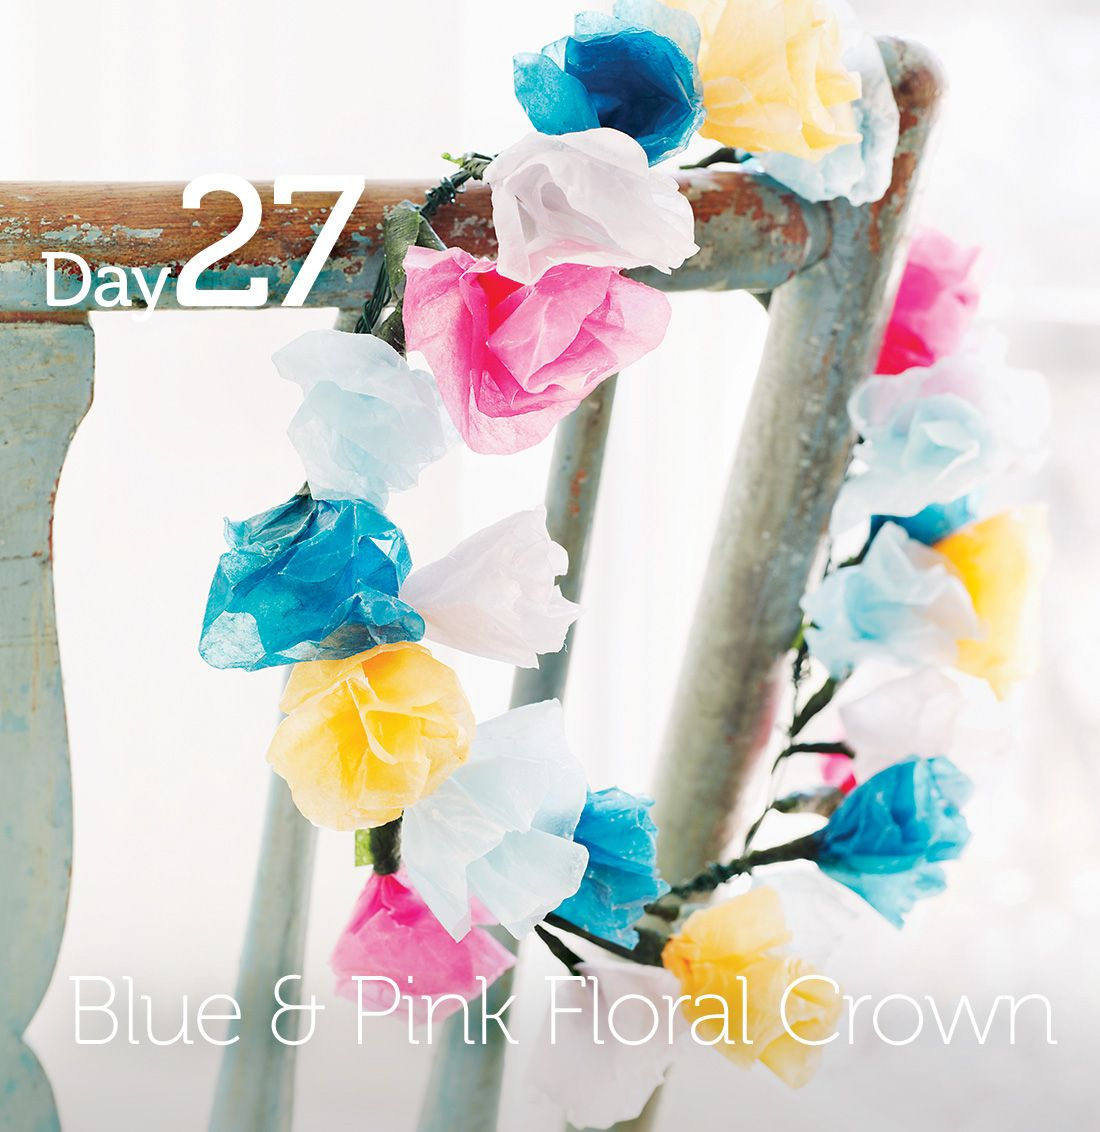 Dyed Paper Flower Crown Celebrating 35 Days Of The Crafts Through